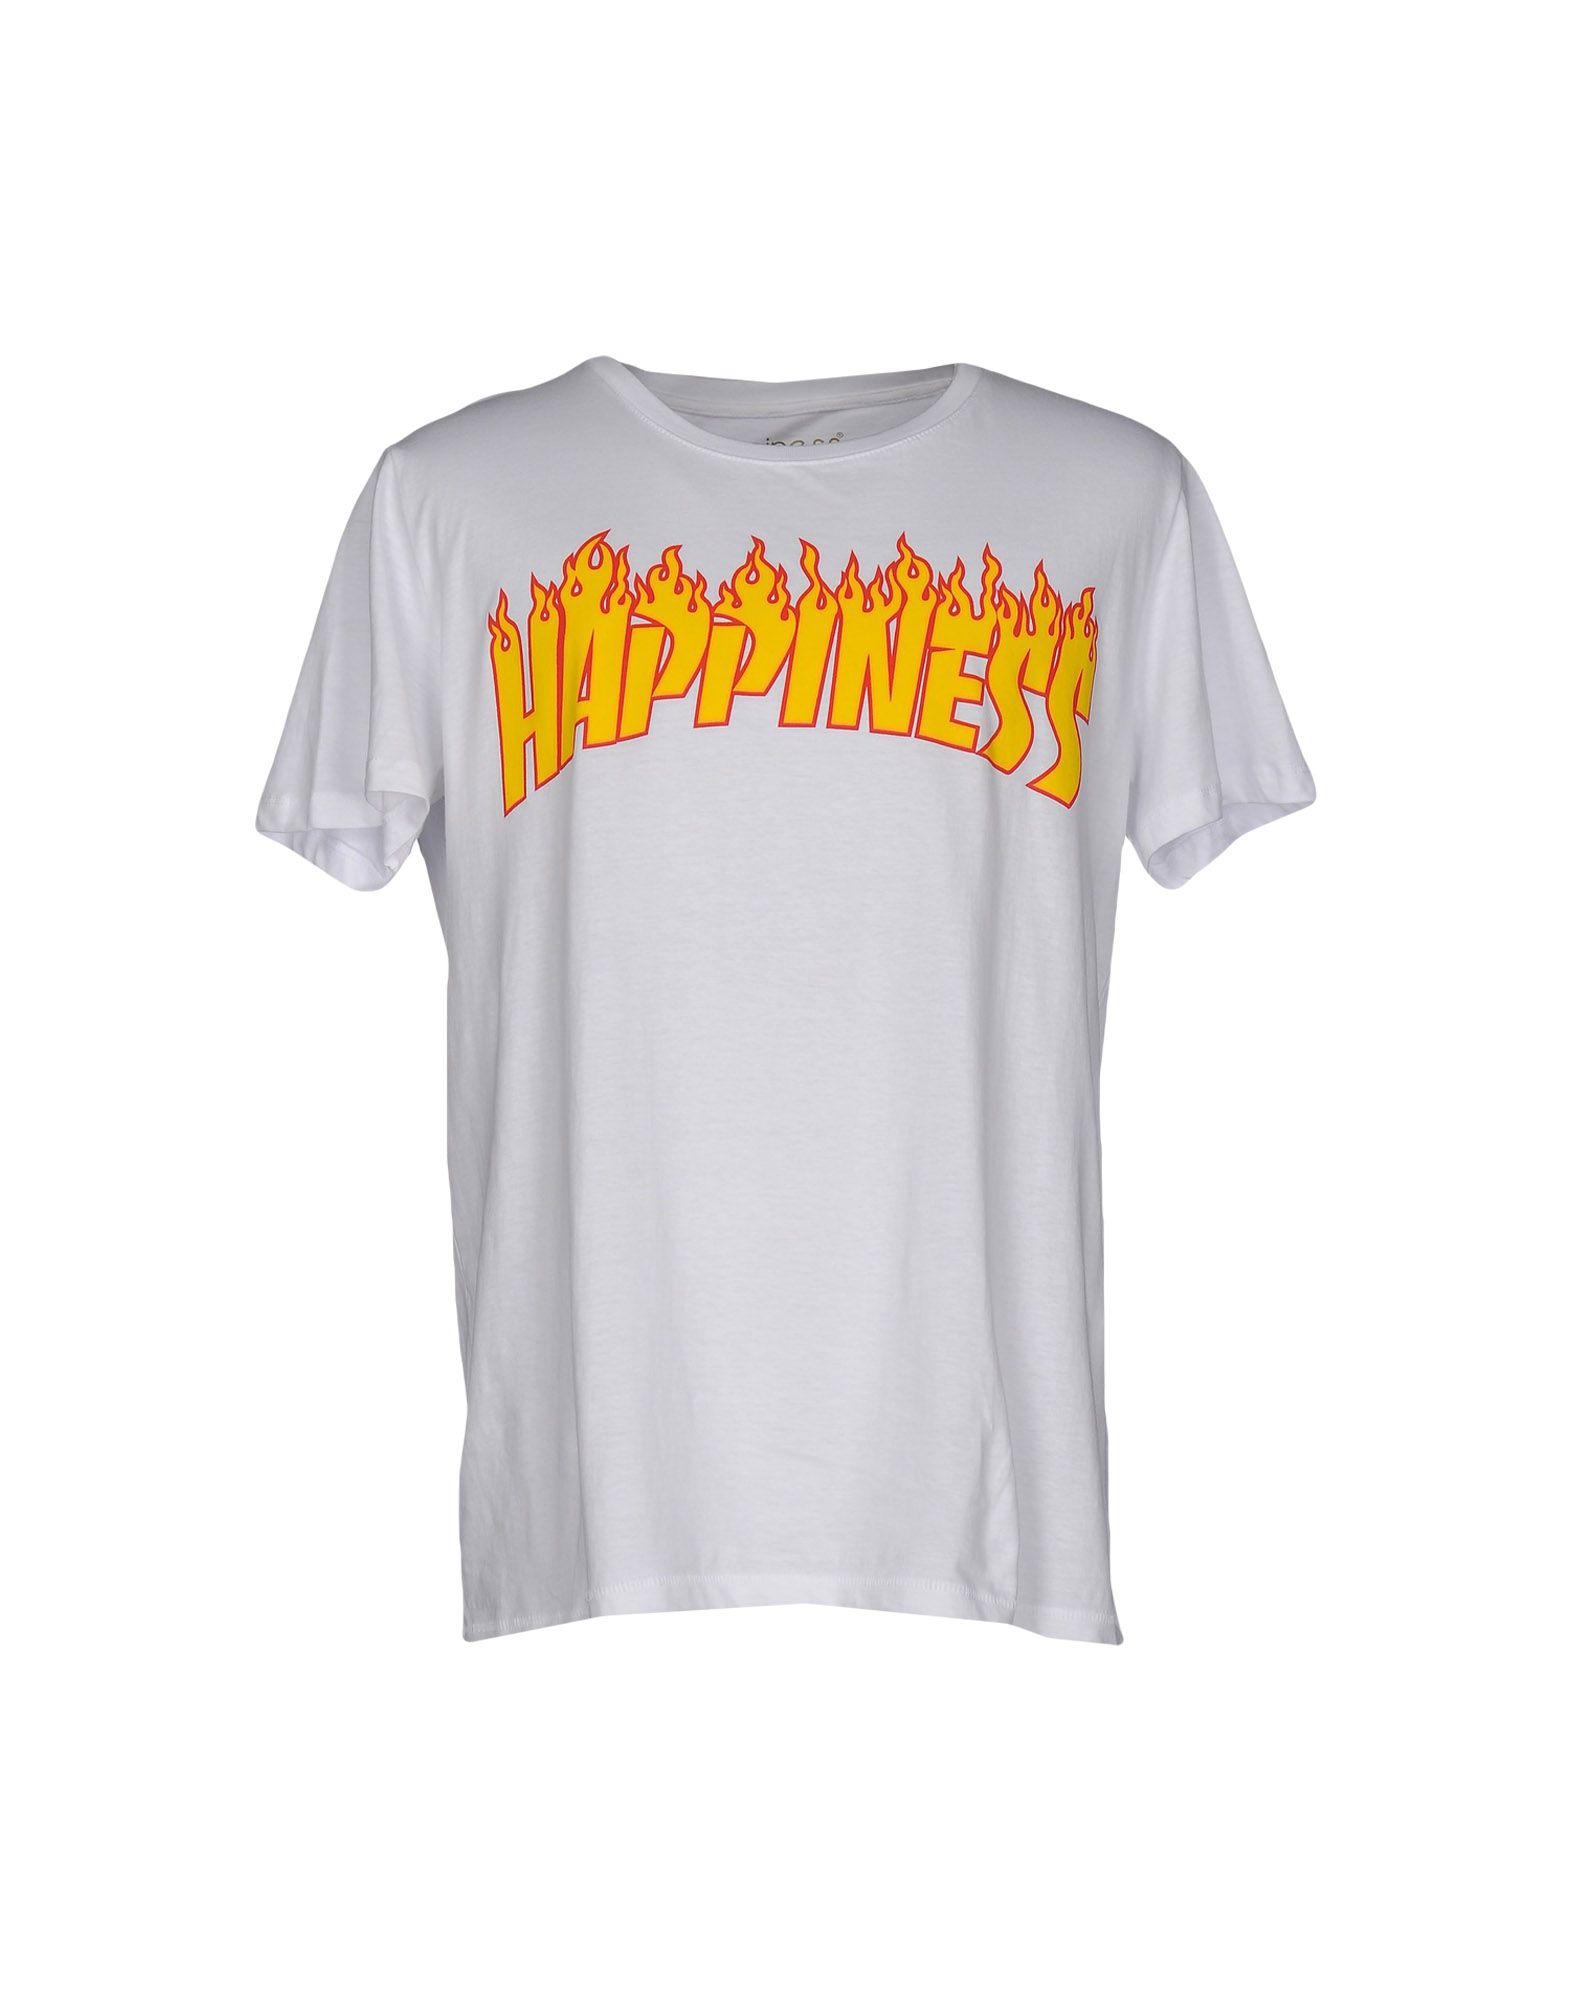 T-Shirt Happiness herren - 12005209CG